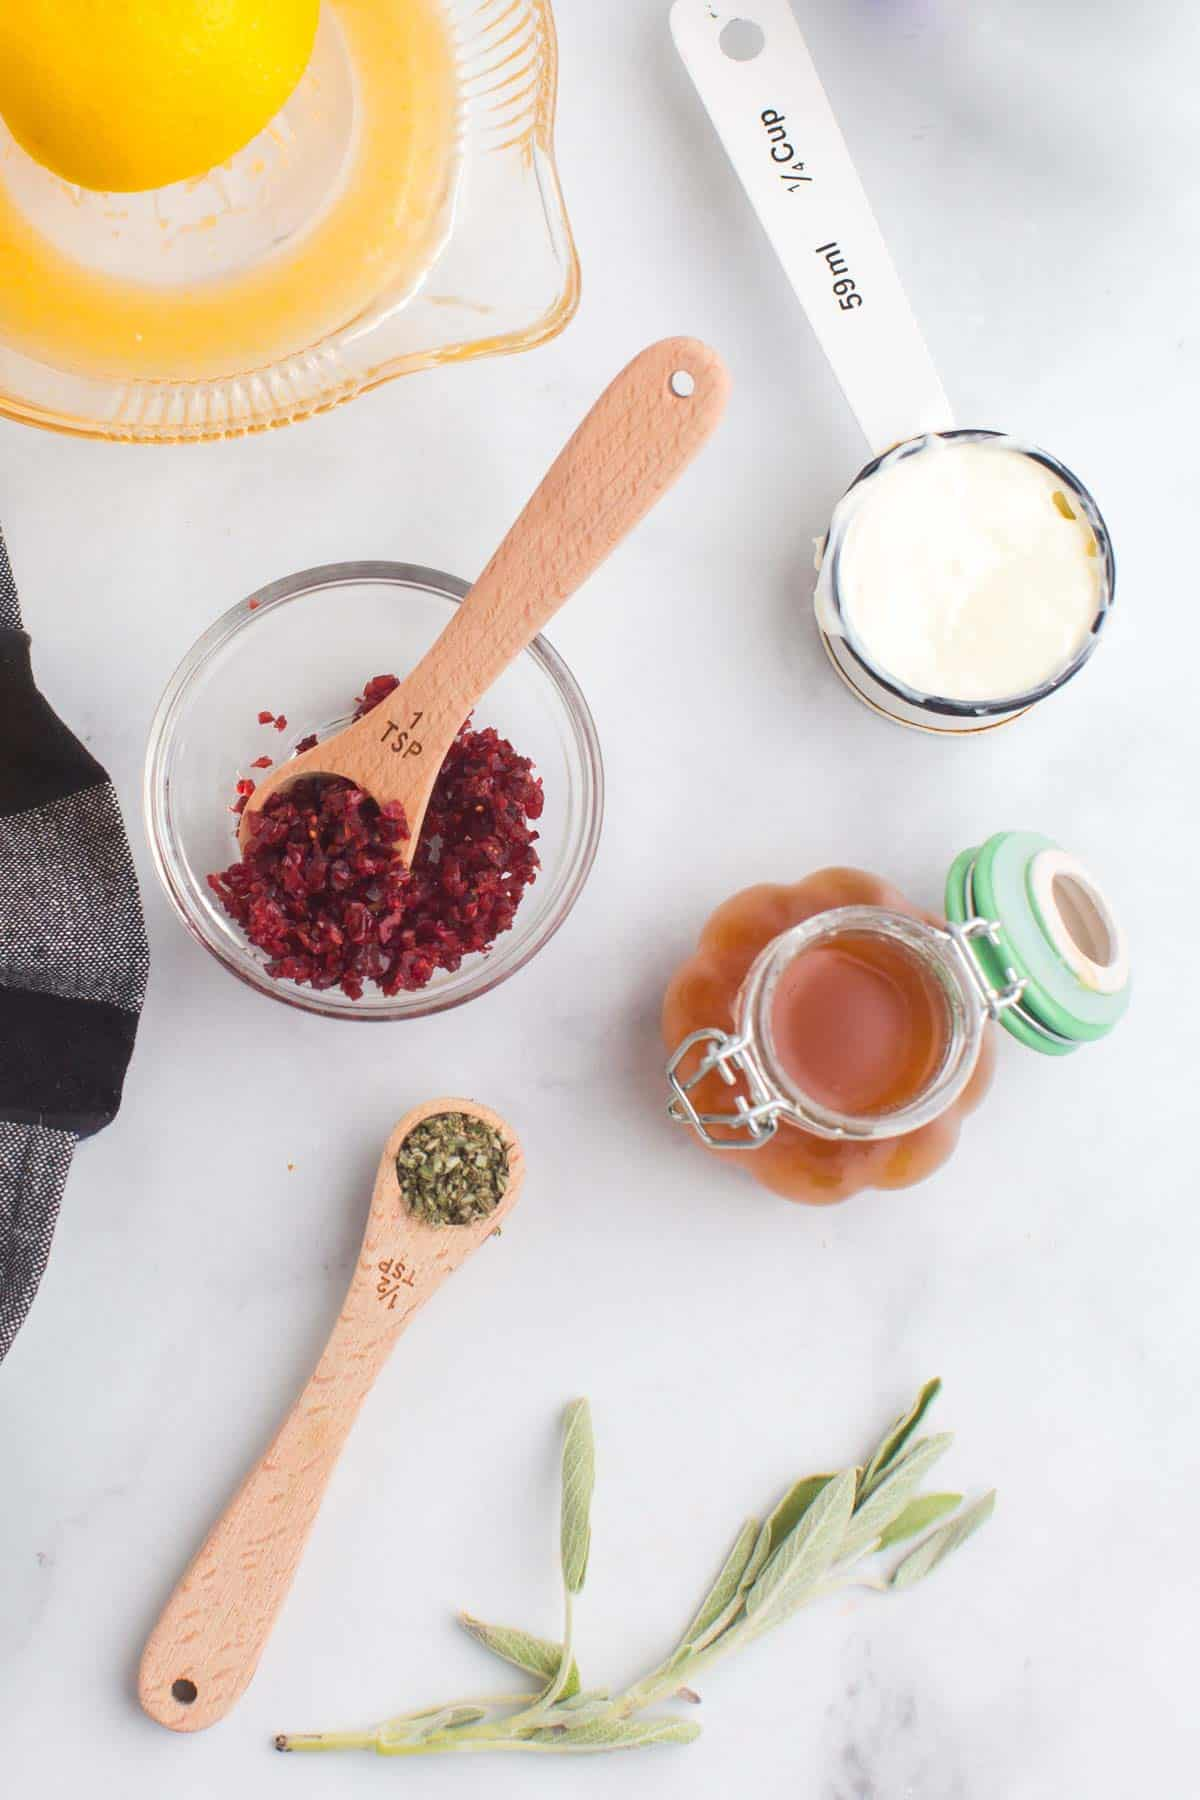 an orange being squeezed on a juicer, a bowl of chopped dried cranberries, a sprig of sage with some minced in a measuring spoon, a bottle of honey, and butter in a measuring cup